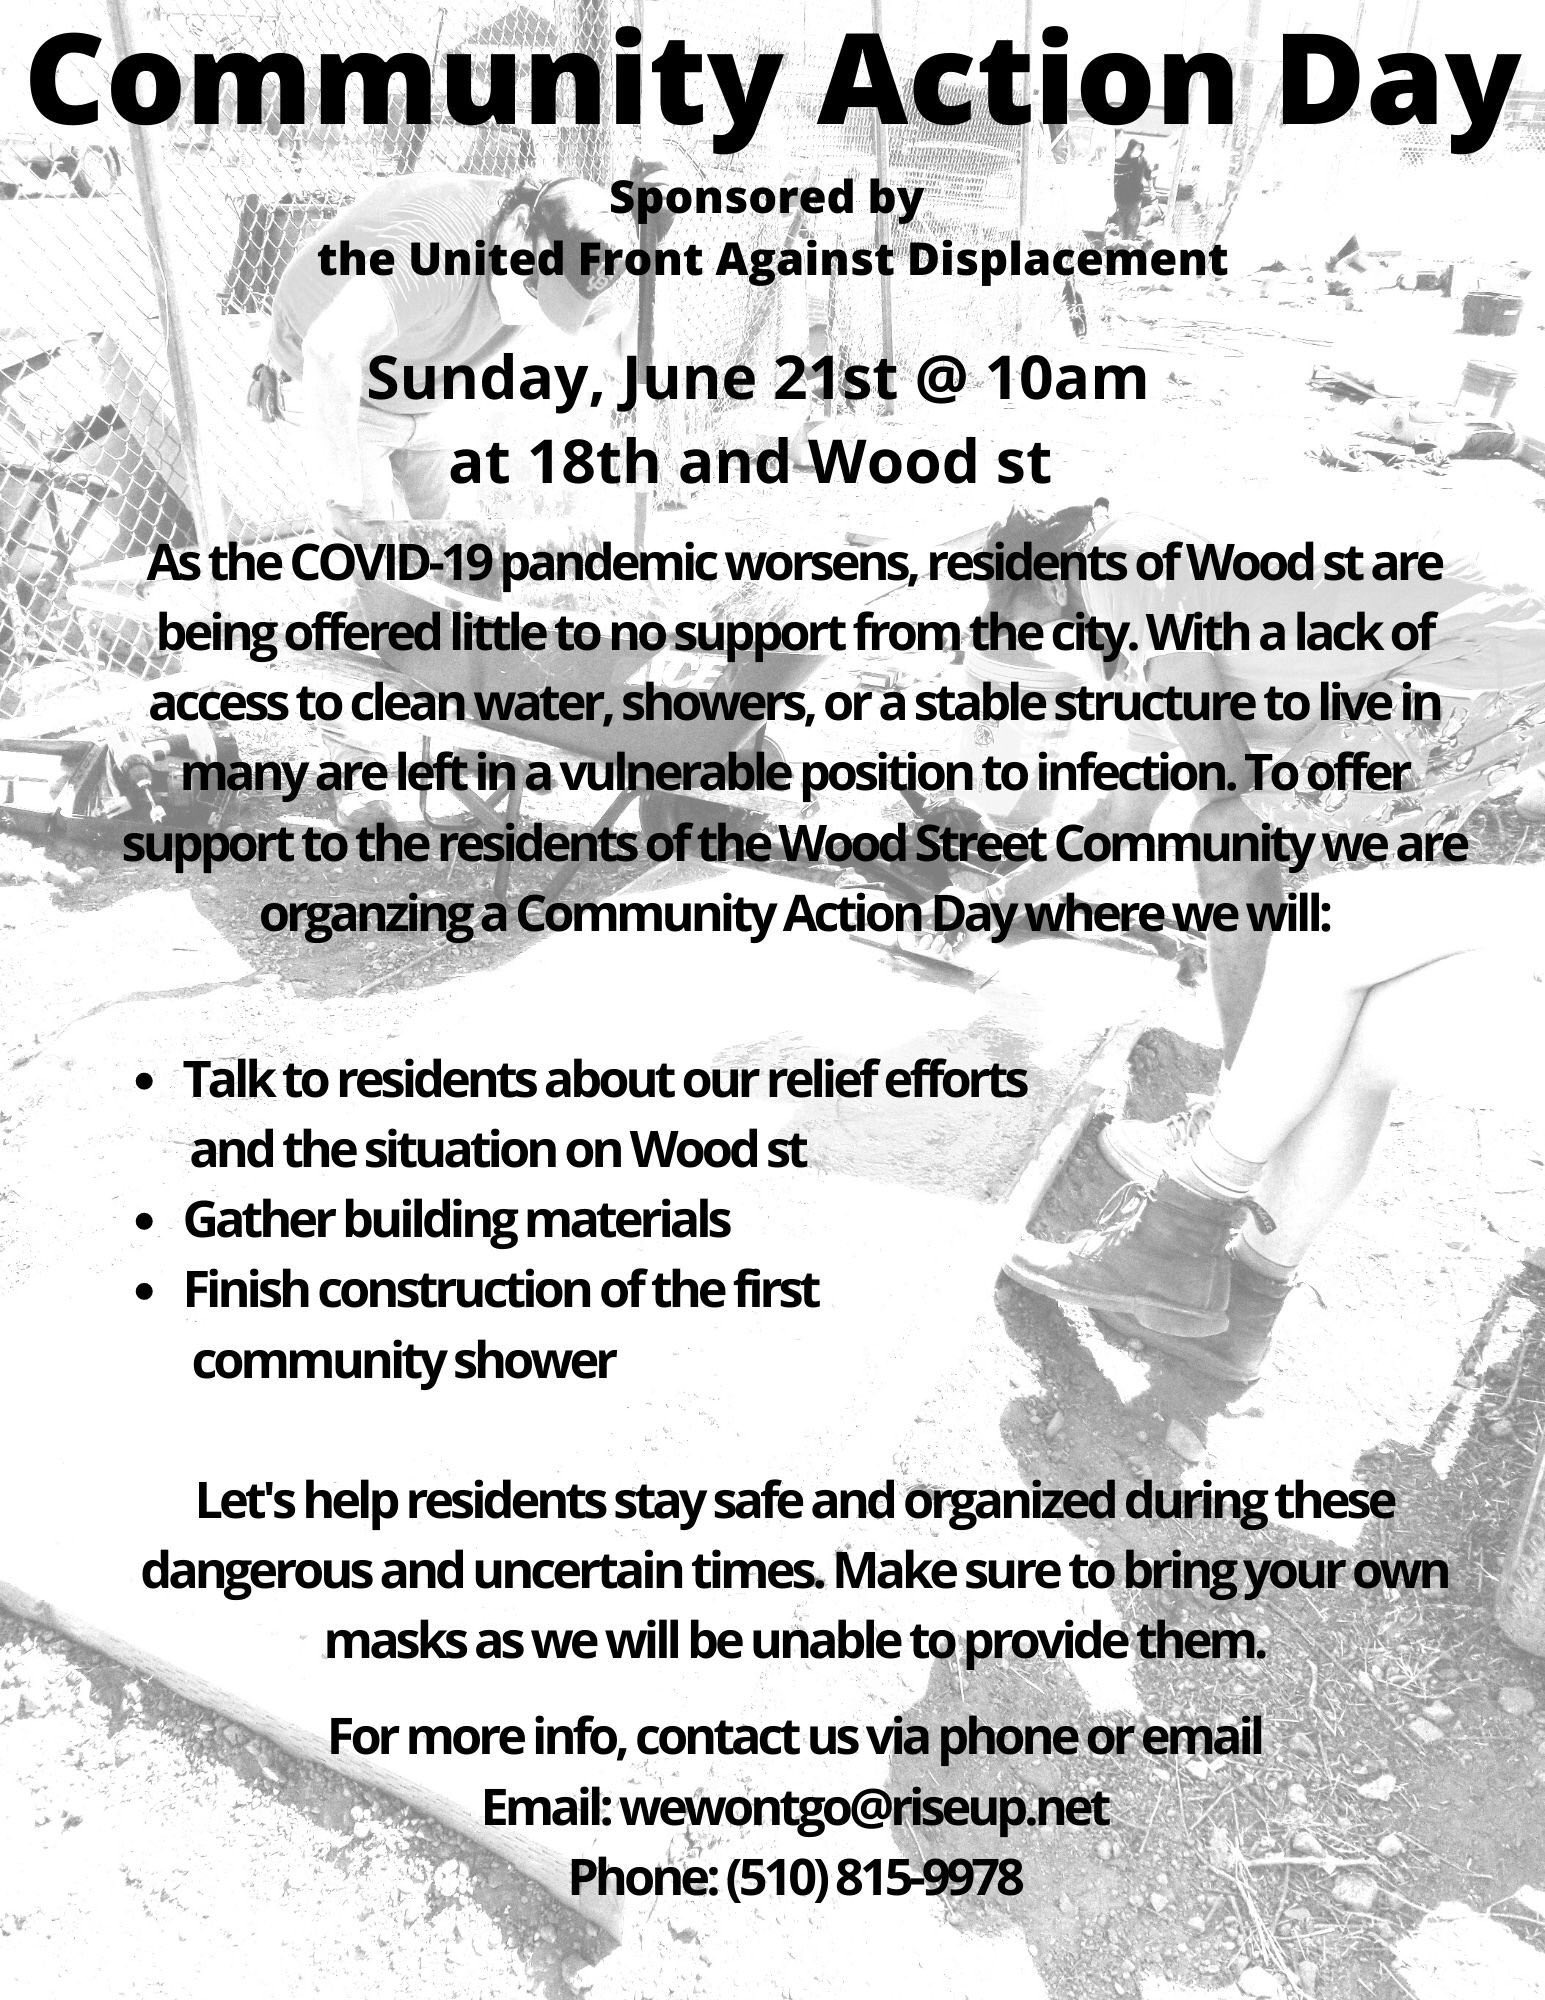 Oakland's Wood St. Homeless – Community Action Day @ 18th & Wood St.